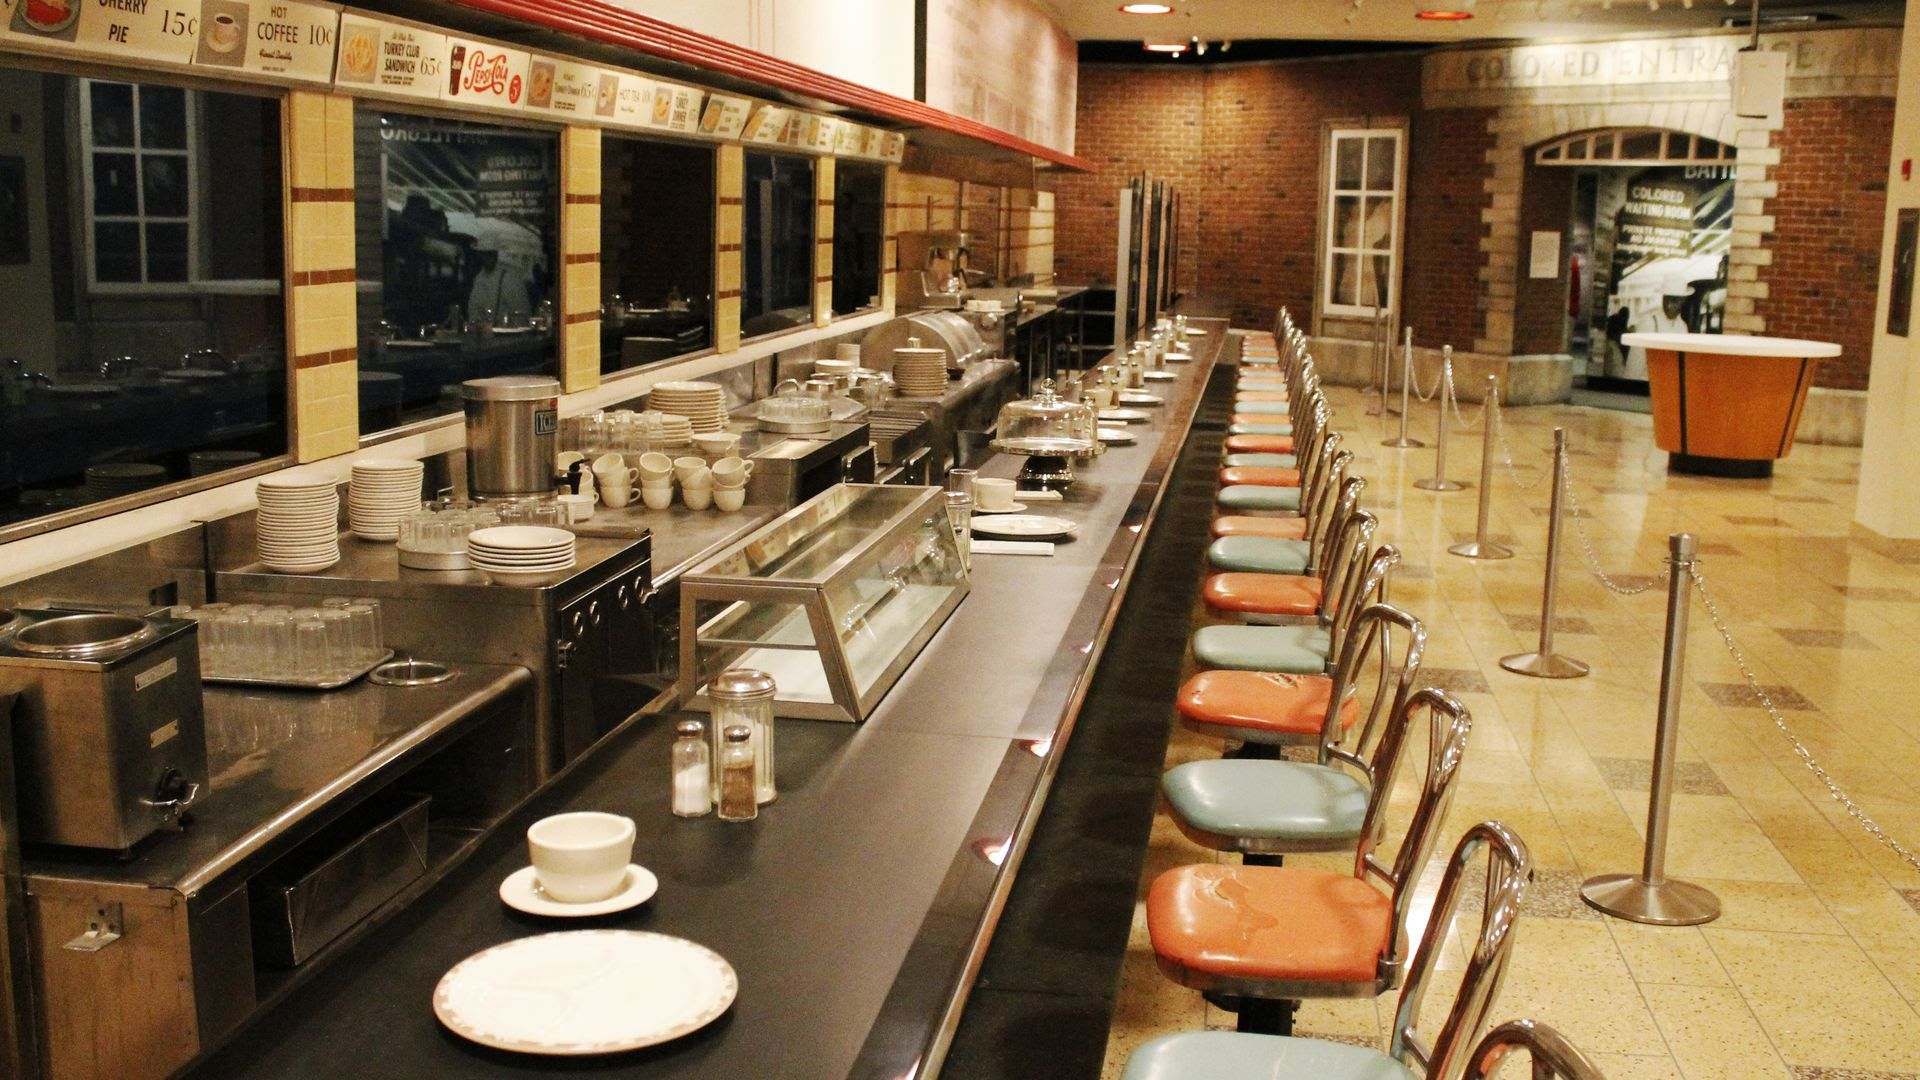 The F.W. Woolworth's lunch counter, as seen at the International Civil Rights Center & Museum in Greensboro, N.C., part of the new U.S. Civil Rights Trail.